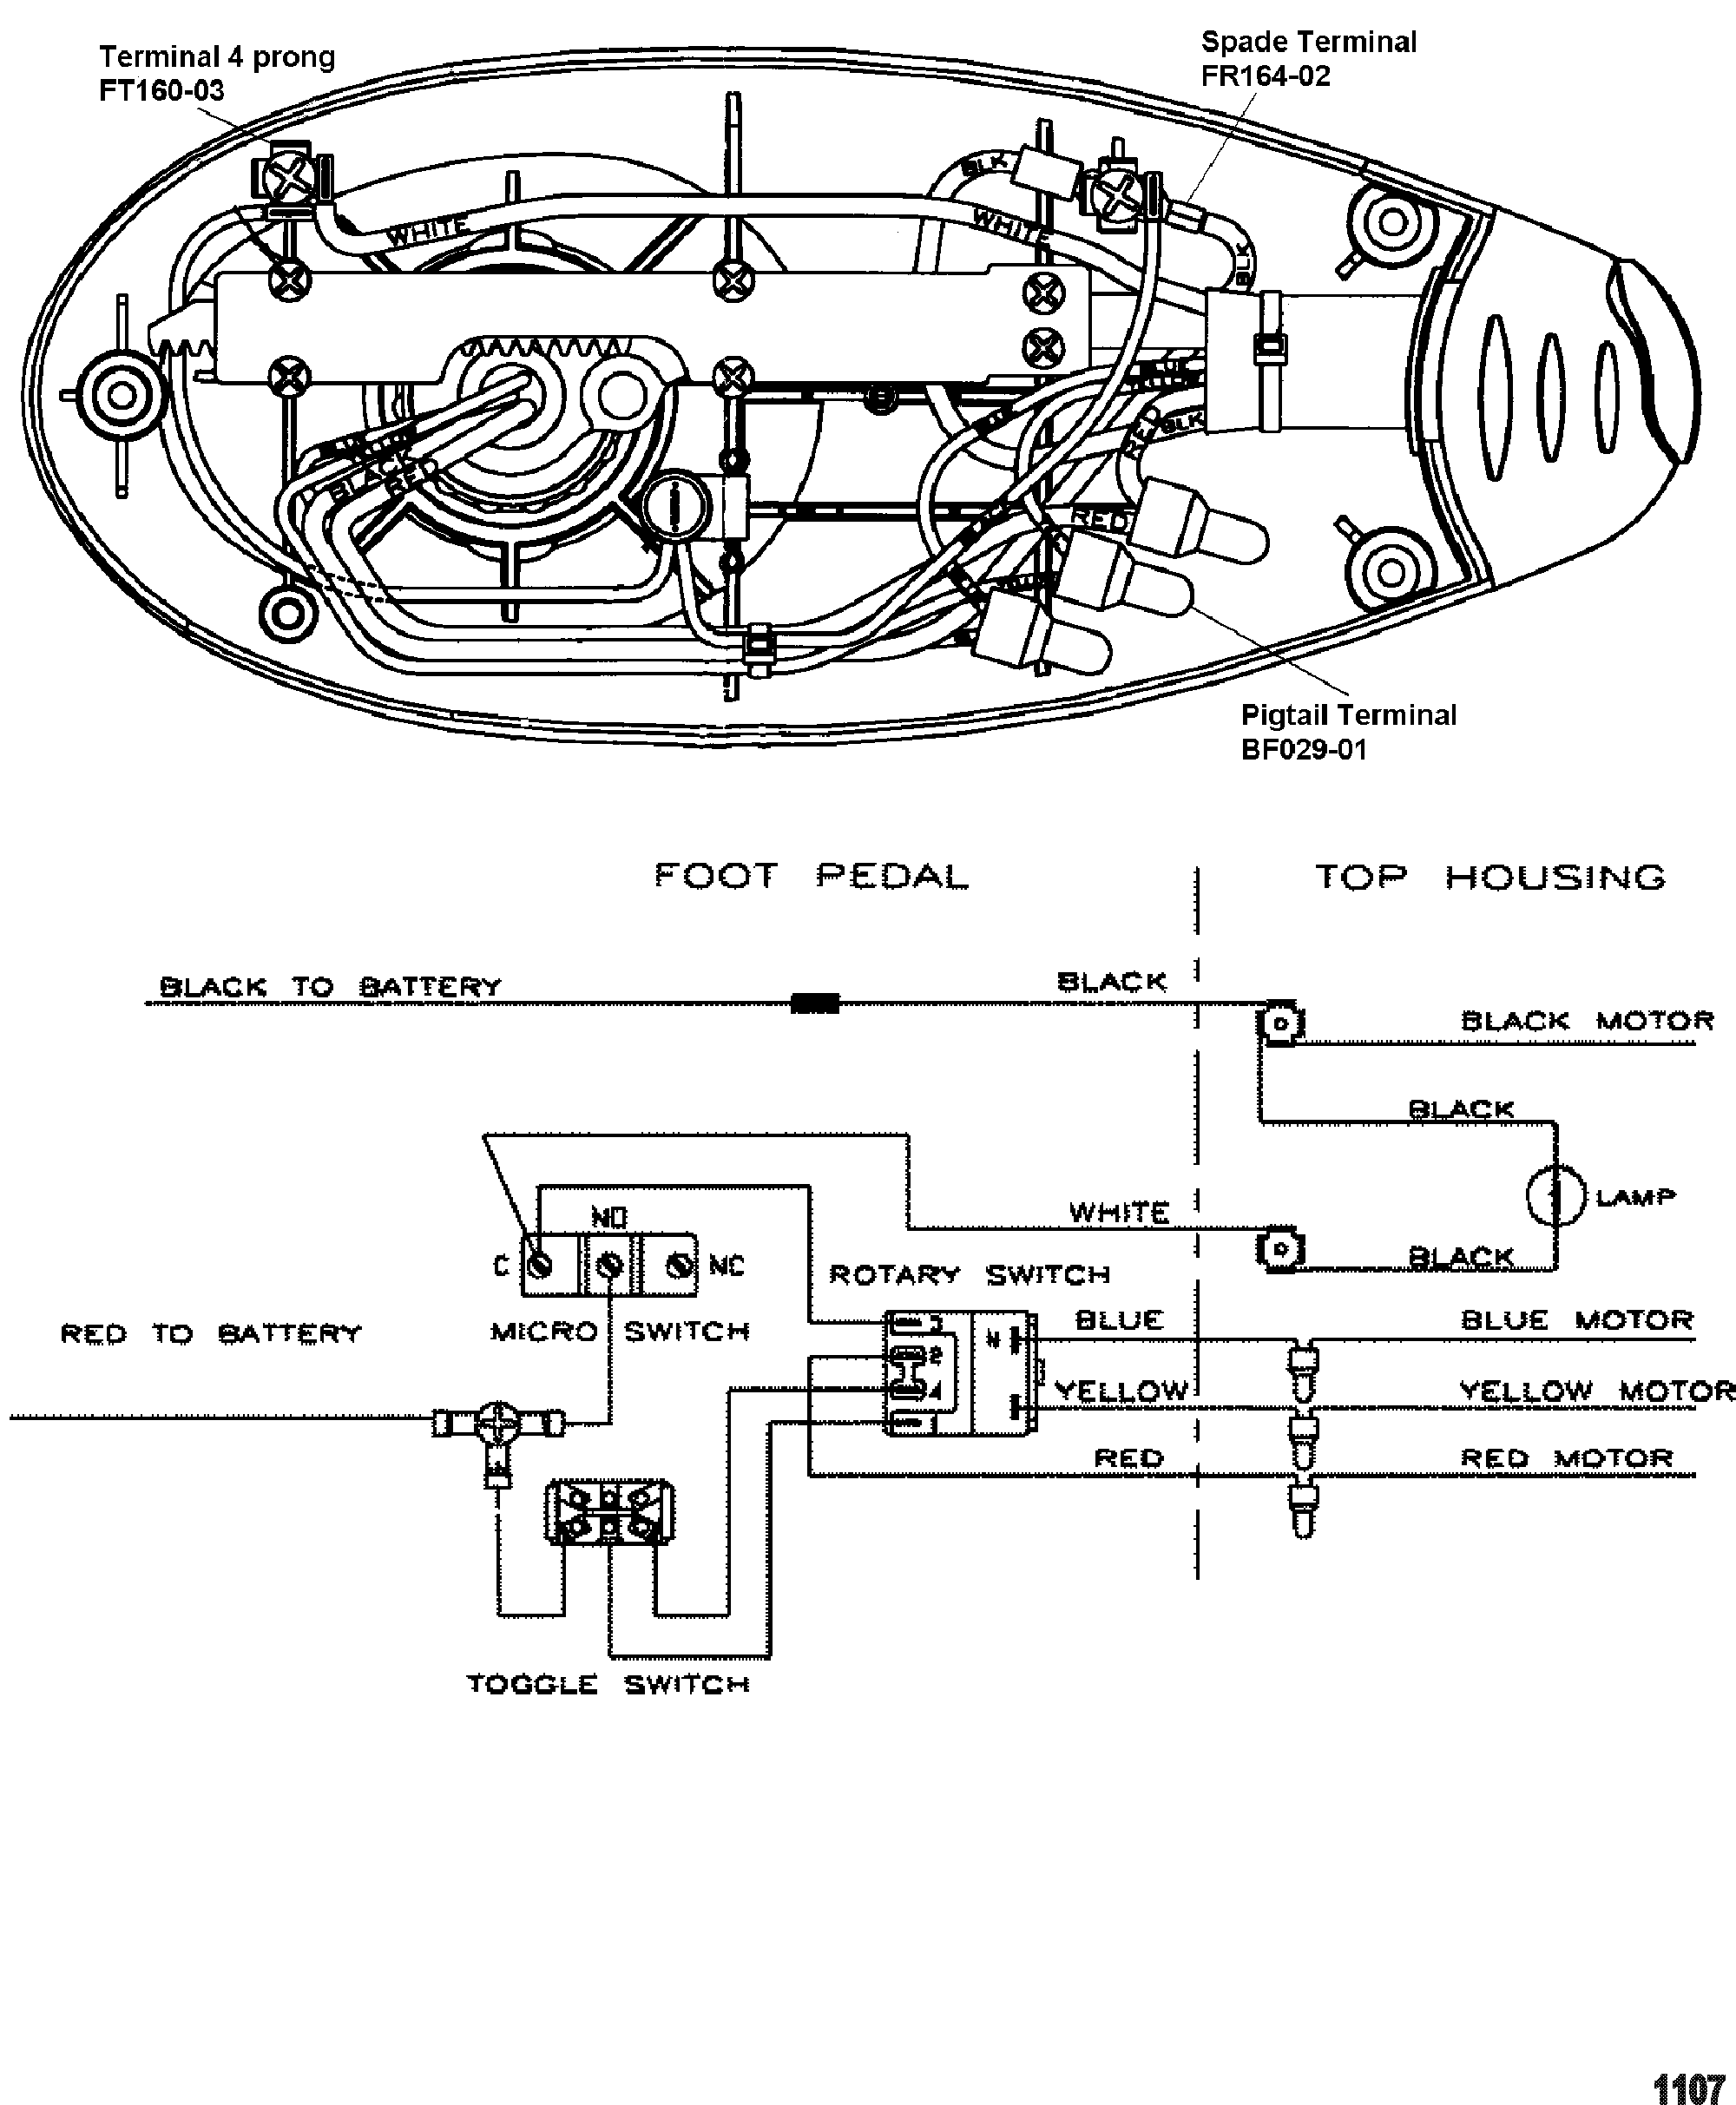 12 Wire Motor Diagram : Part Winding / They can be used as